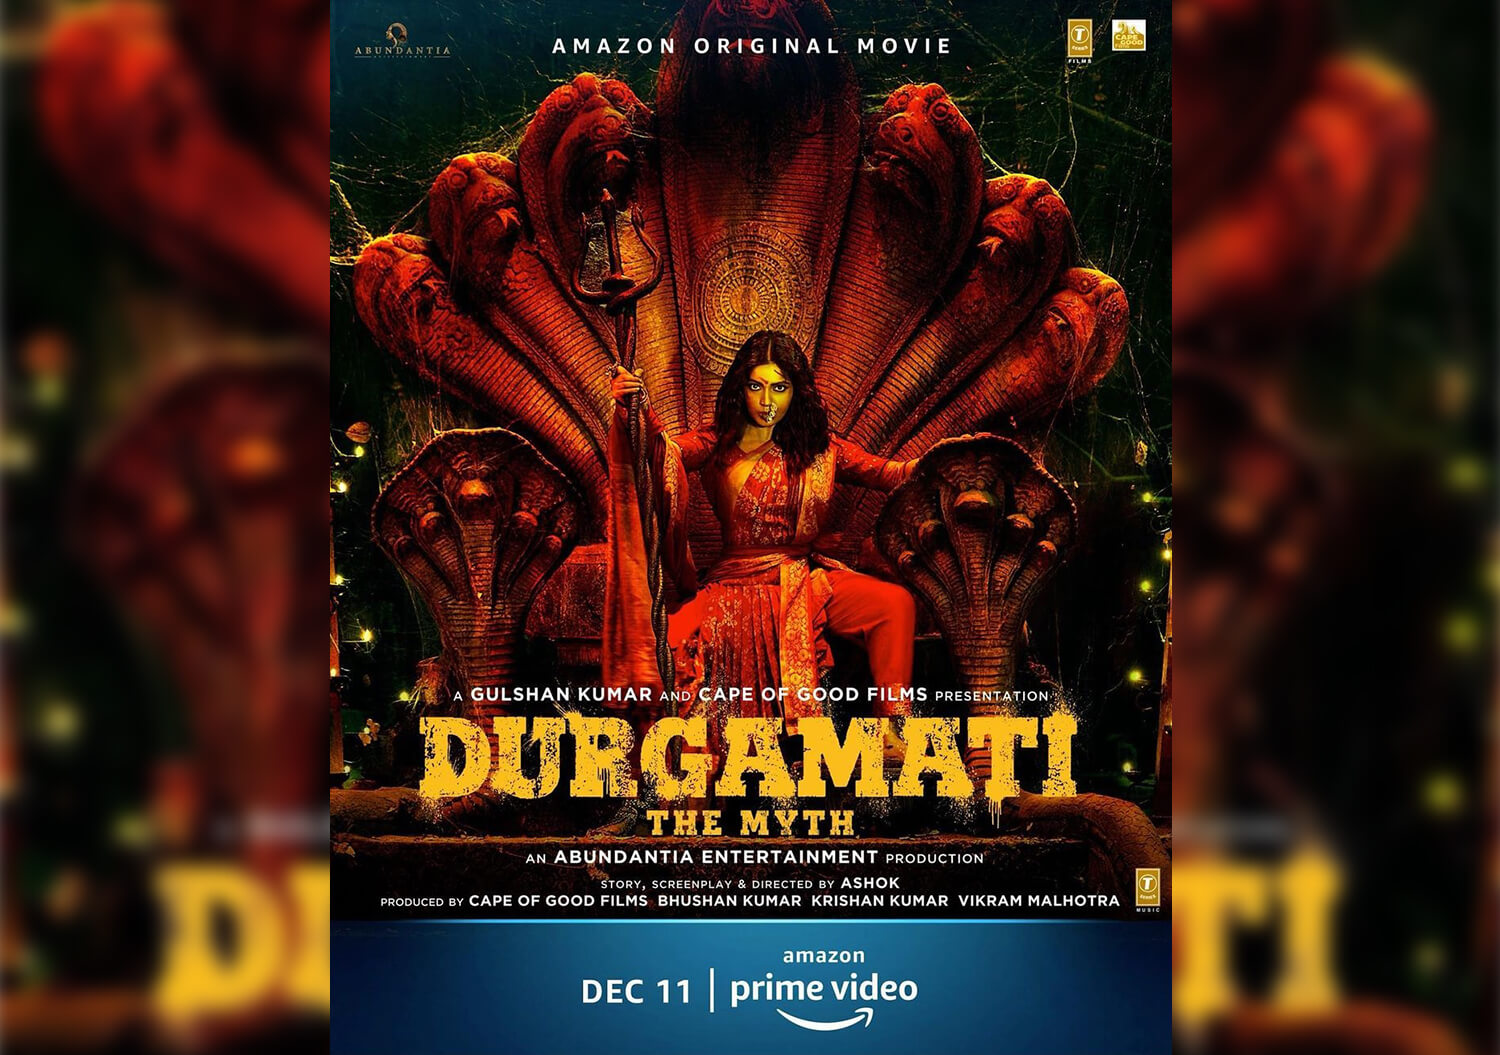 Bhumi Pednekar portrays 'horror' genre in 'Durgamati' trailer